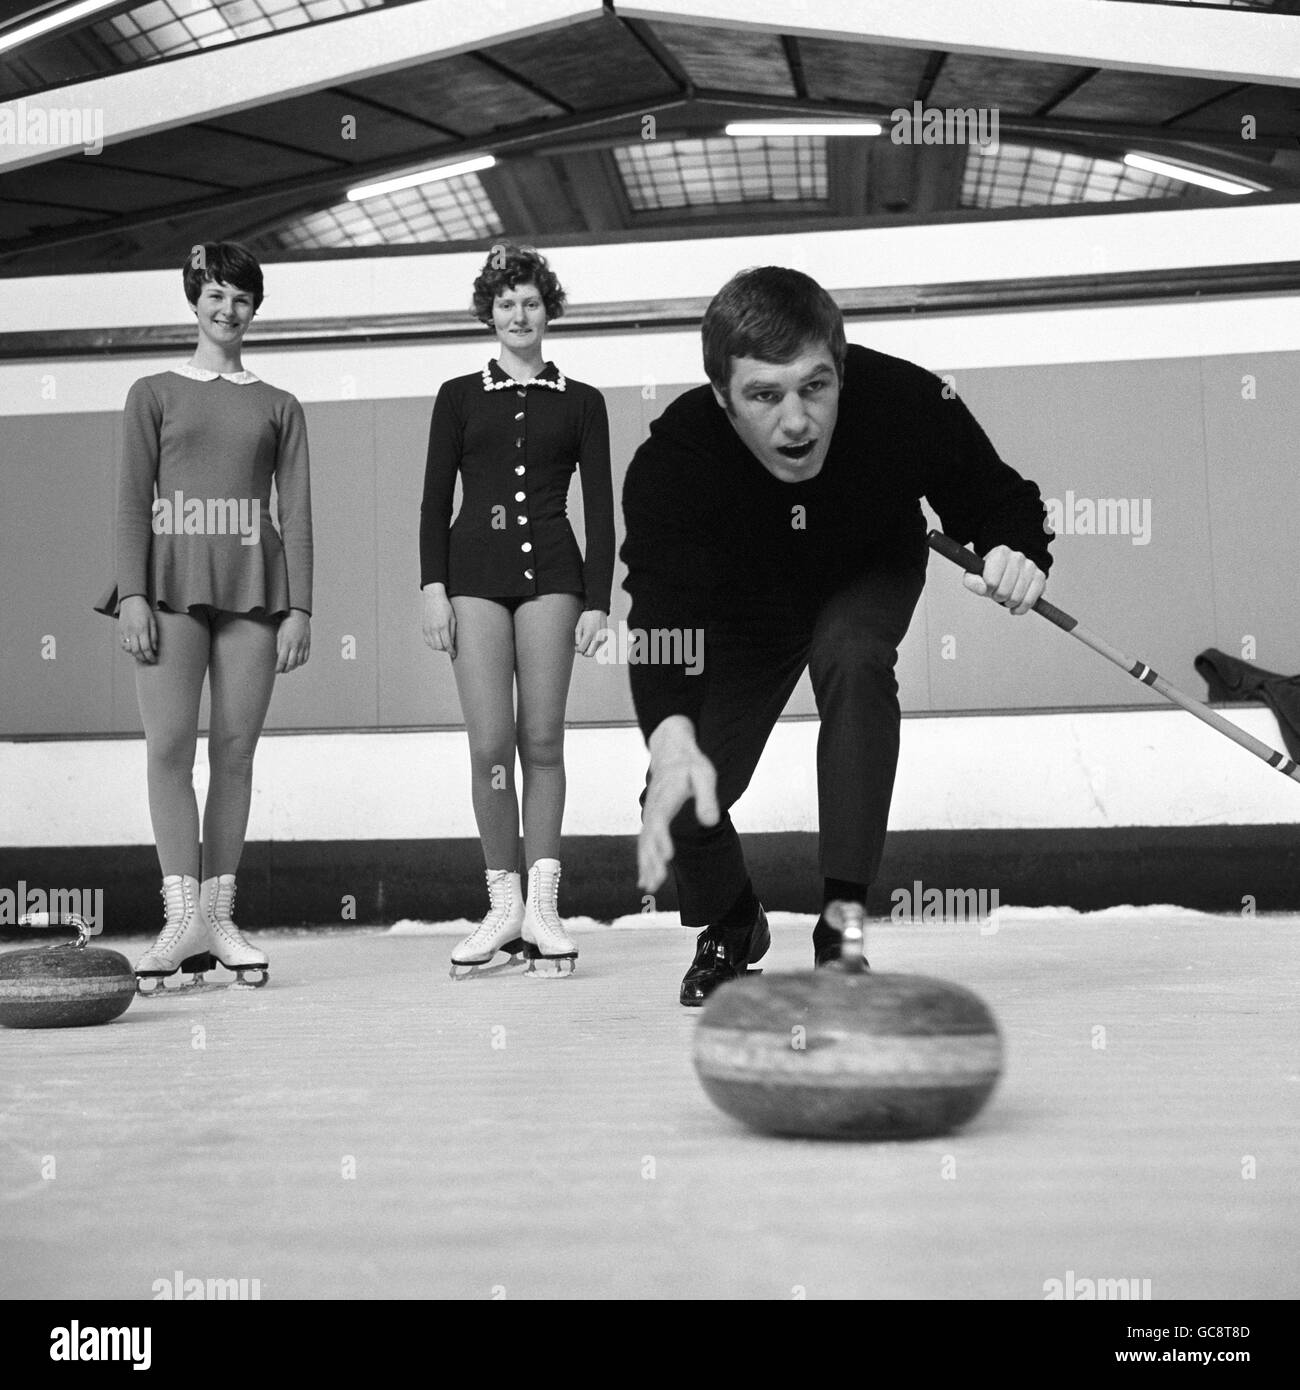 Boxing - Billy Walker Training - Richmond Ice Rink - London - 1966 - Stock Image